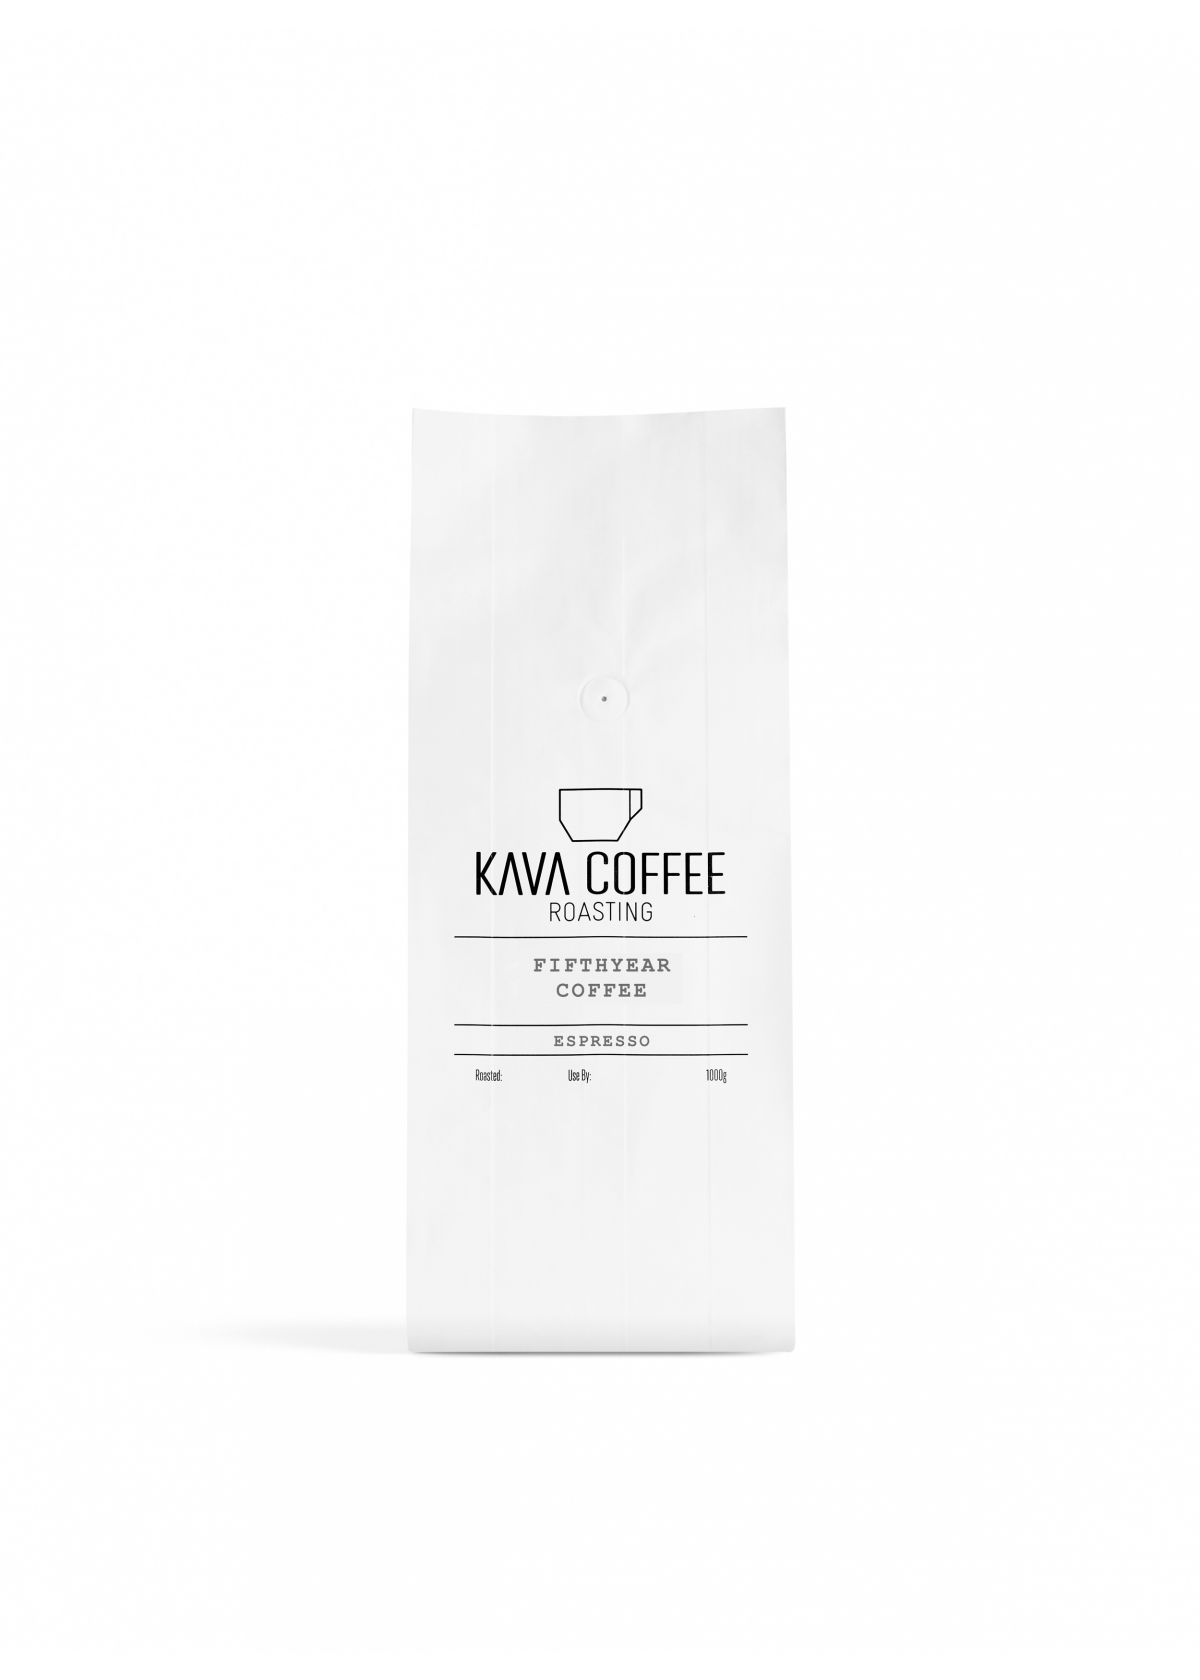 Fifthyear Coffee Espresso 1 kg